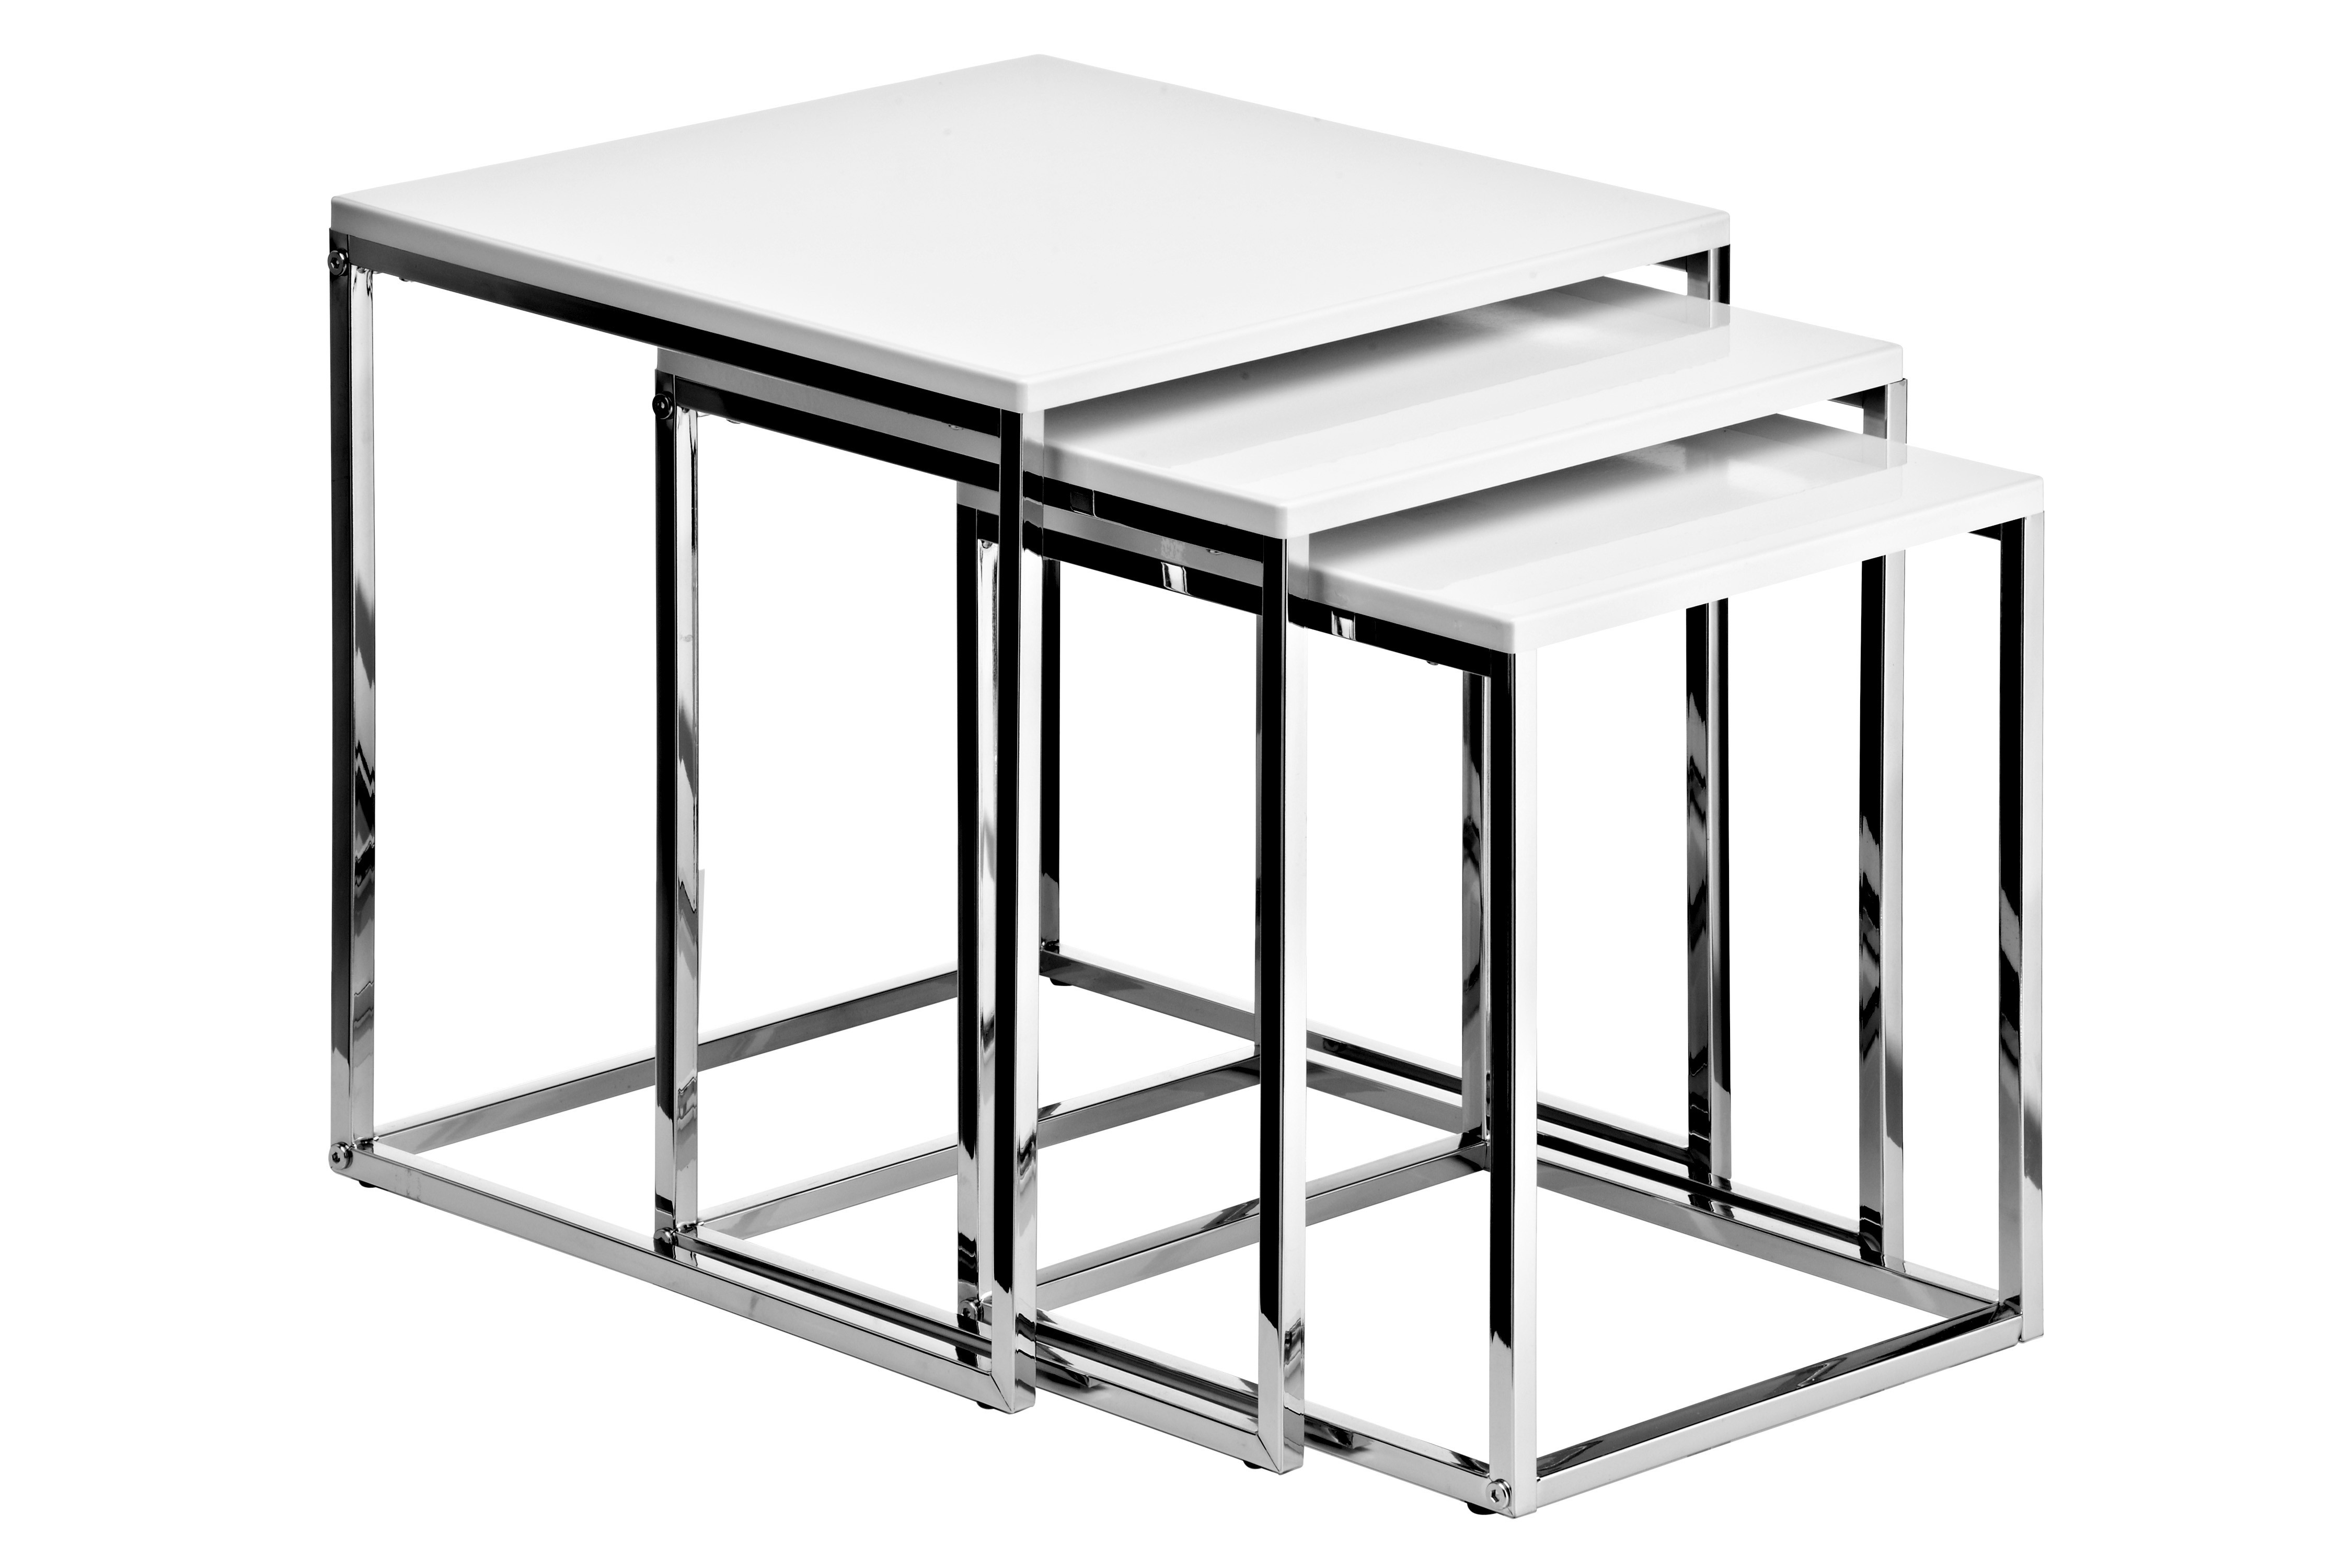 Nested Tables with Chrome Frame, White High Gloss, Set of 3